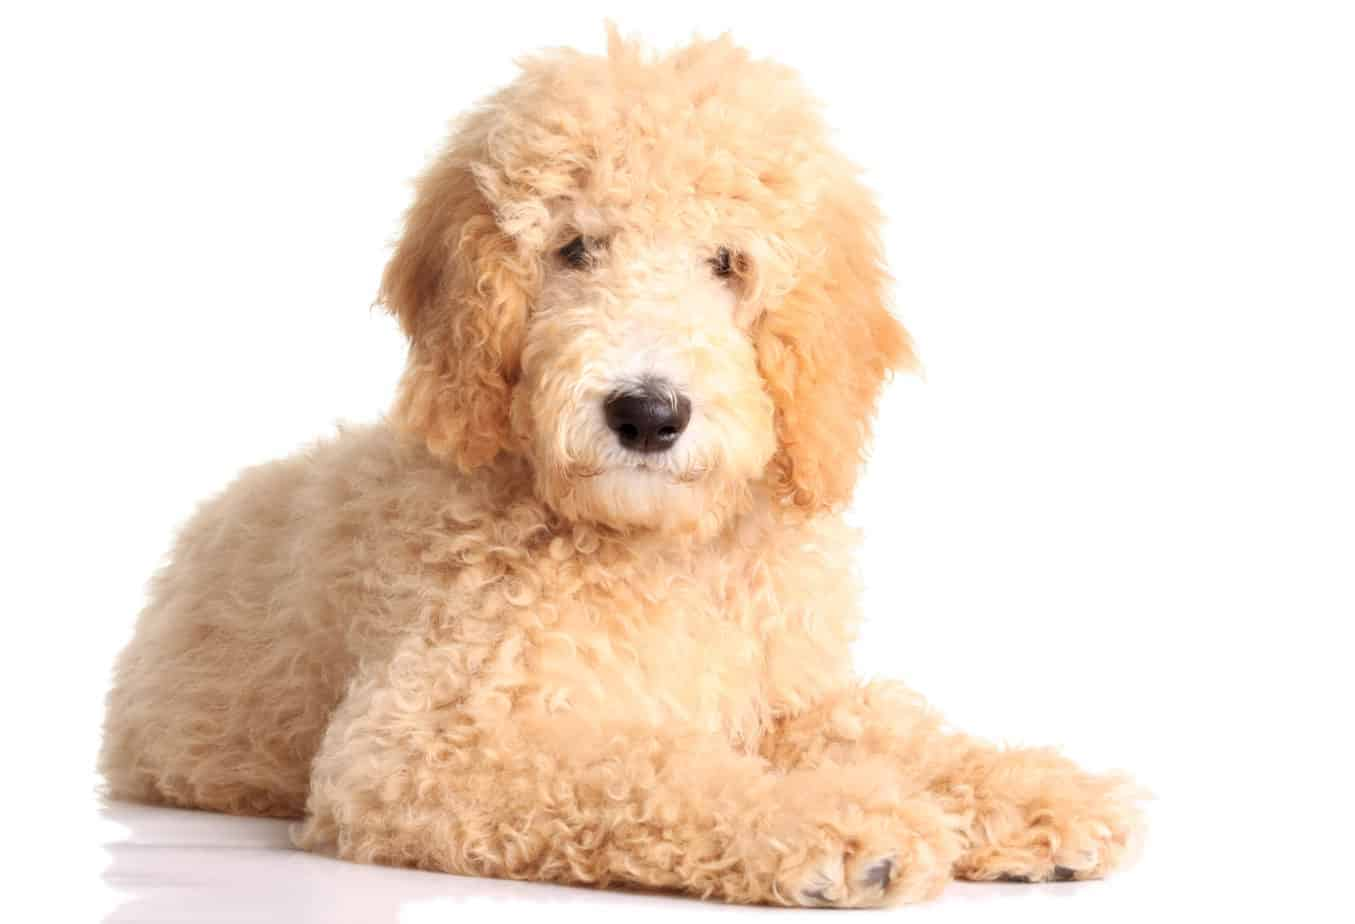 Goldendoodles are ideal dogs for first-time owners. They are smart, friendly and easy to train.